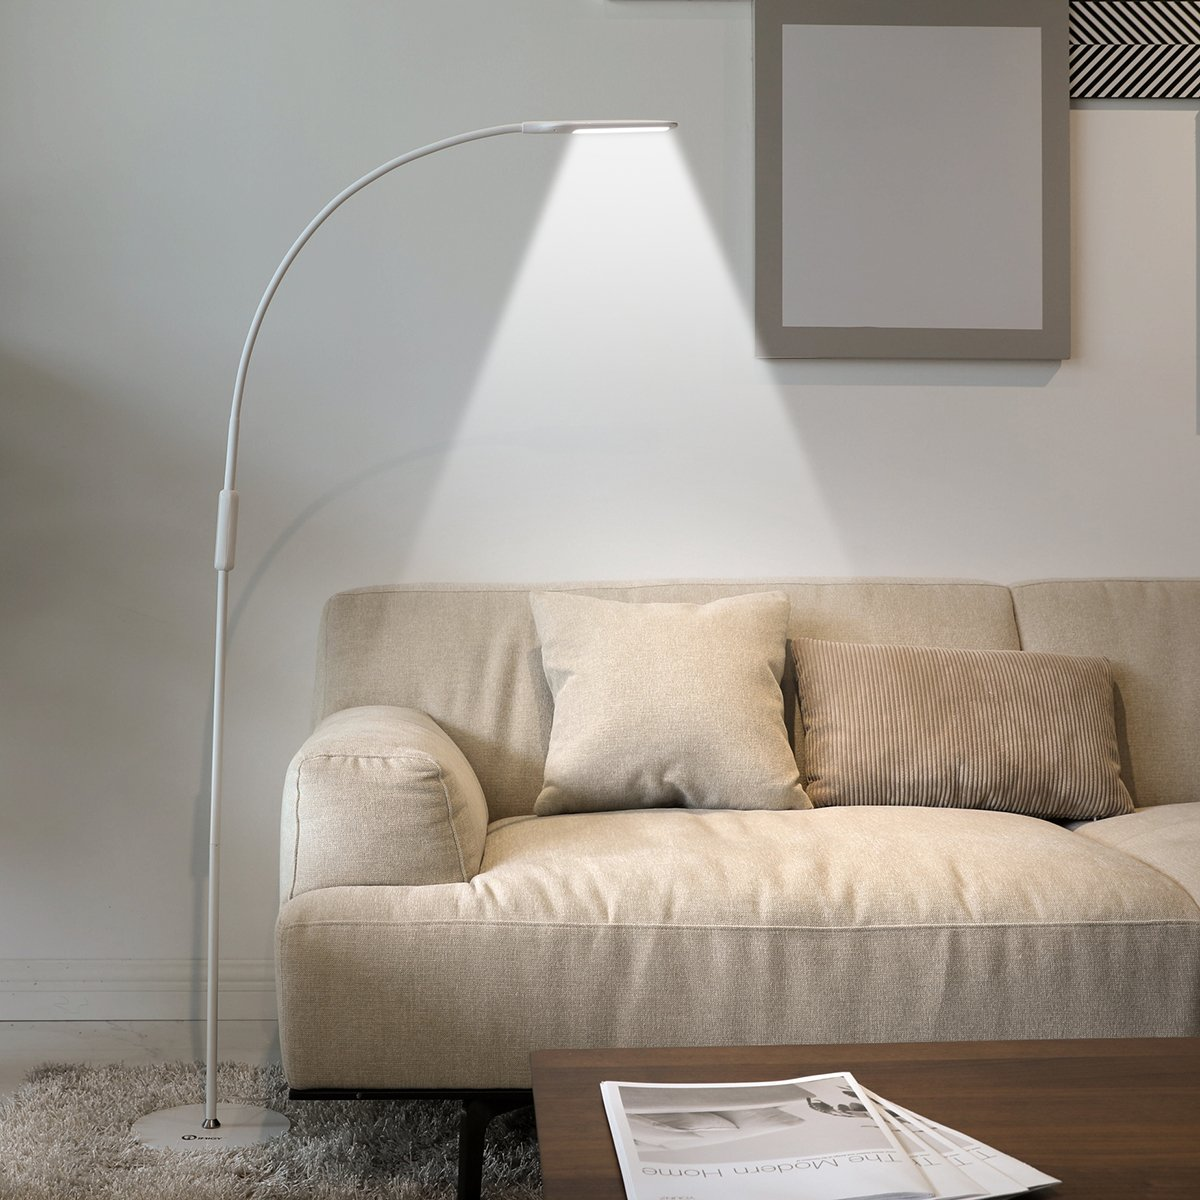 IMIGY Dimmable 9W Floor Lamp, Office/Work/Living Room Reading Flexible Gooseneck Light with Touch and Remote Control, 5-Level Brightness and Color Temperature Dimmable Eye-Care Technology Light, White by IMIGY (Image #7)